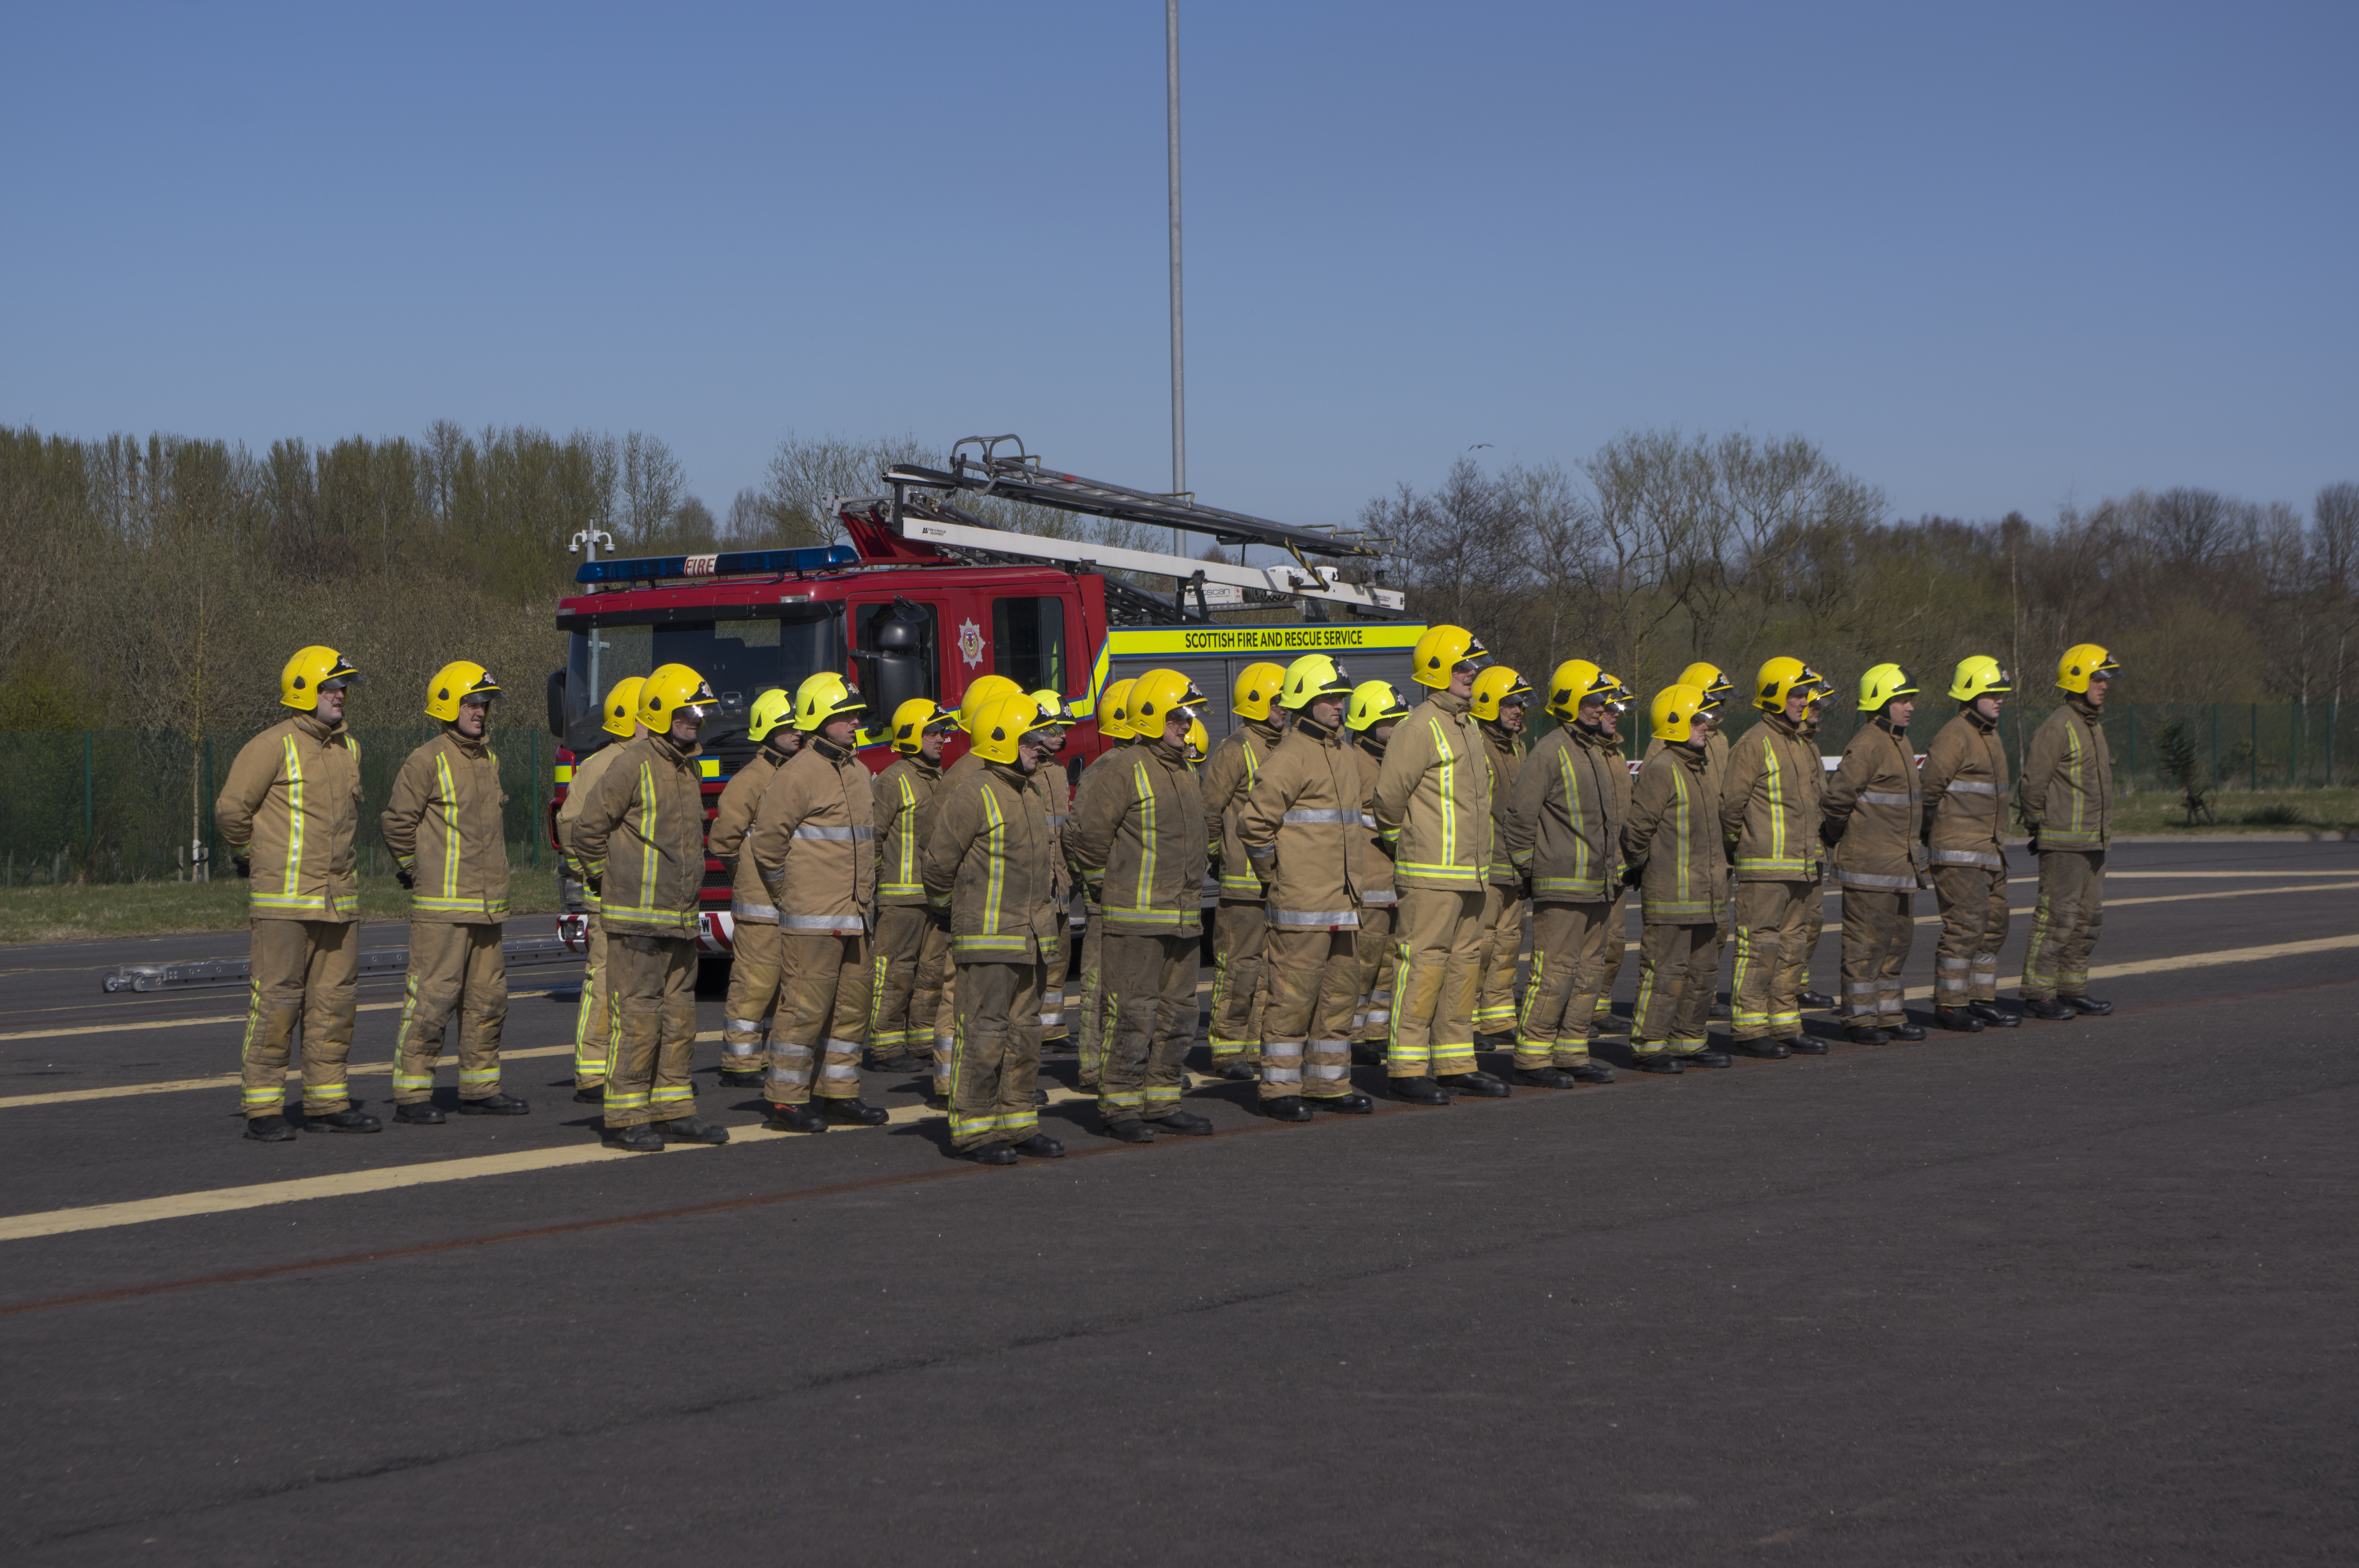 Meet 30 new firefighters who will serve and protect Scotland's communities